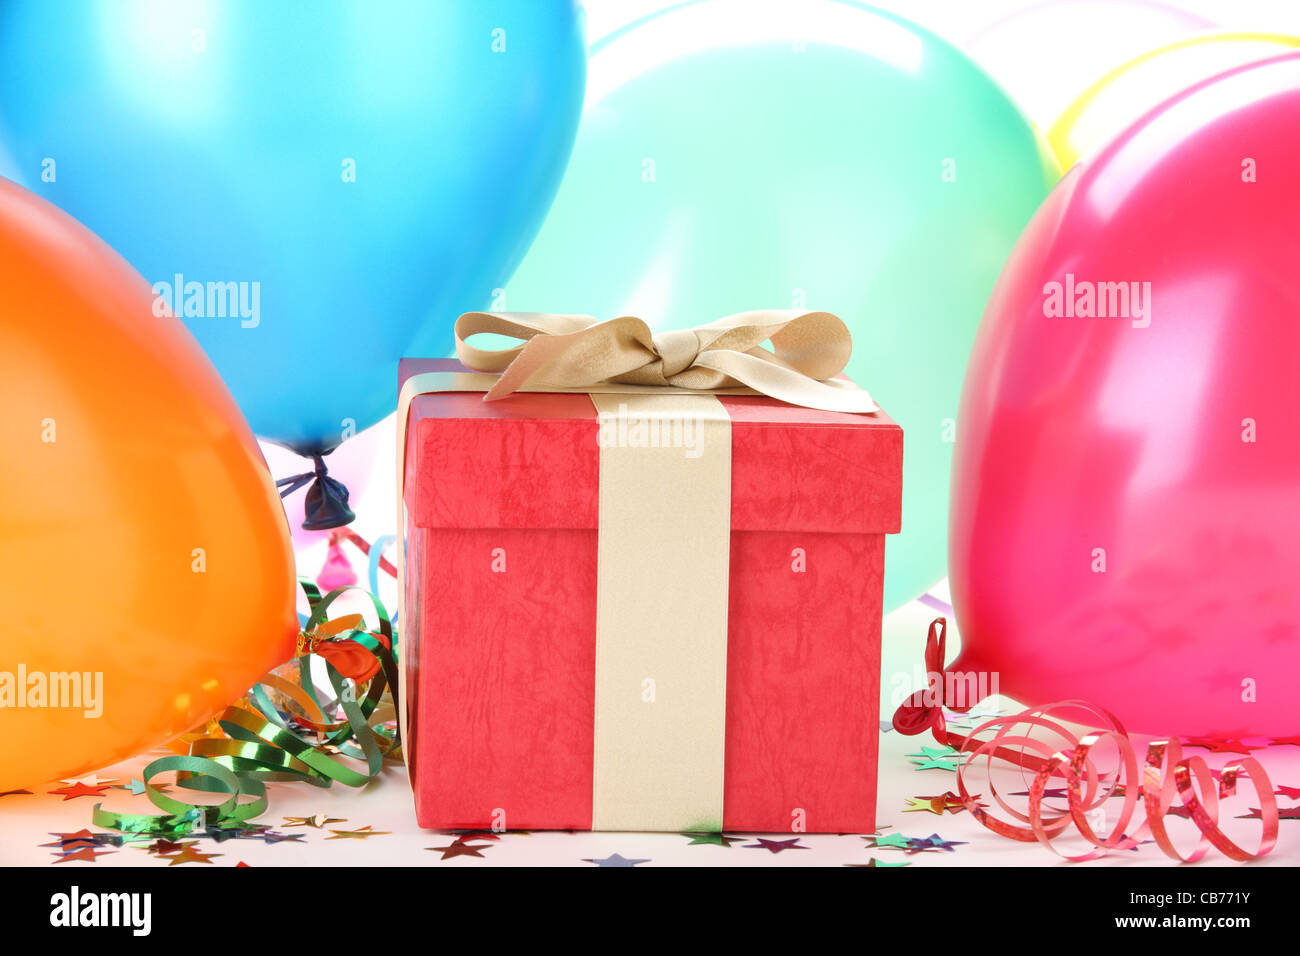 New Year's gift with balloons - Stock Image